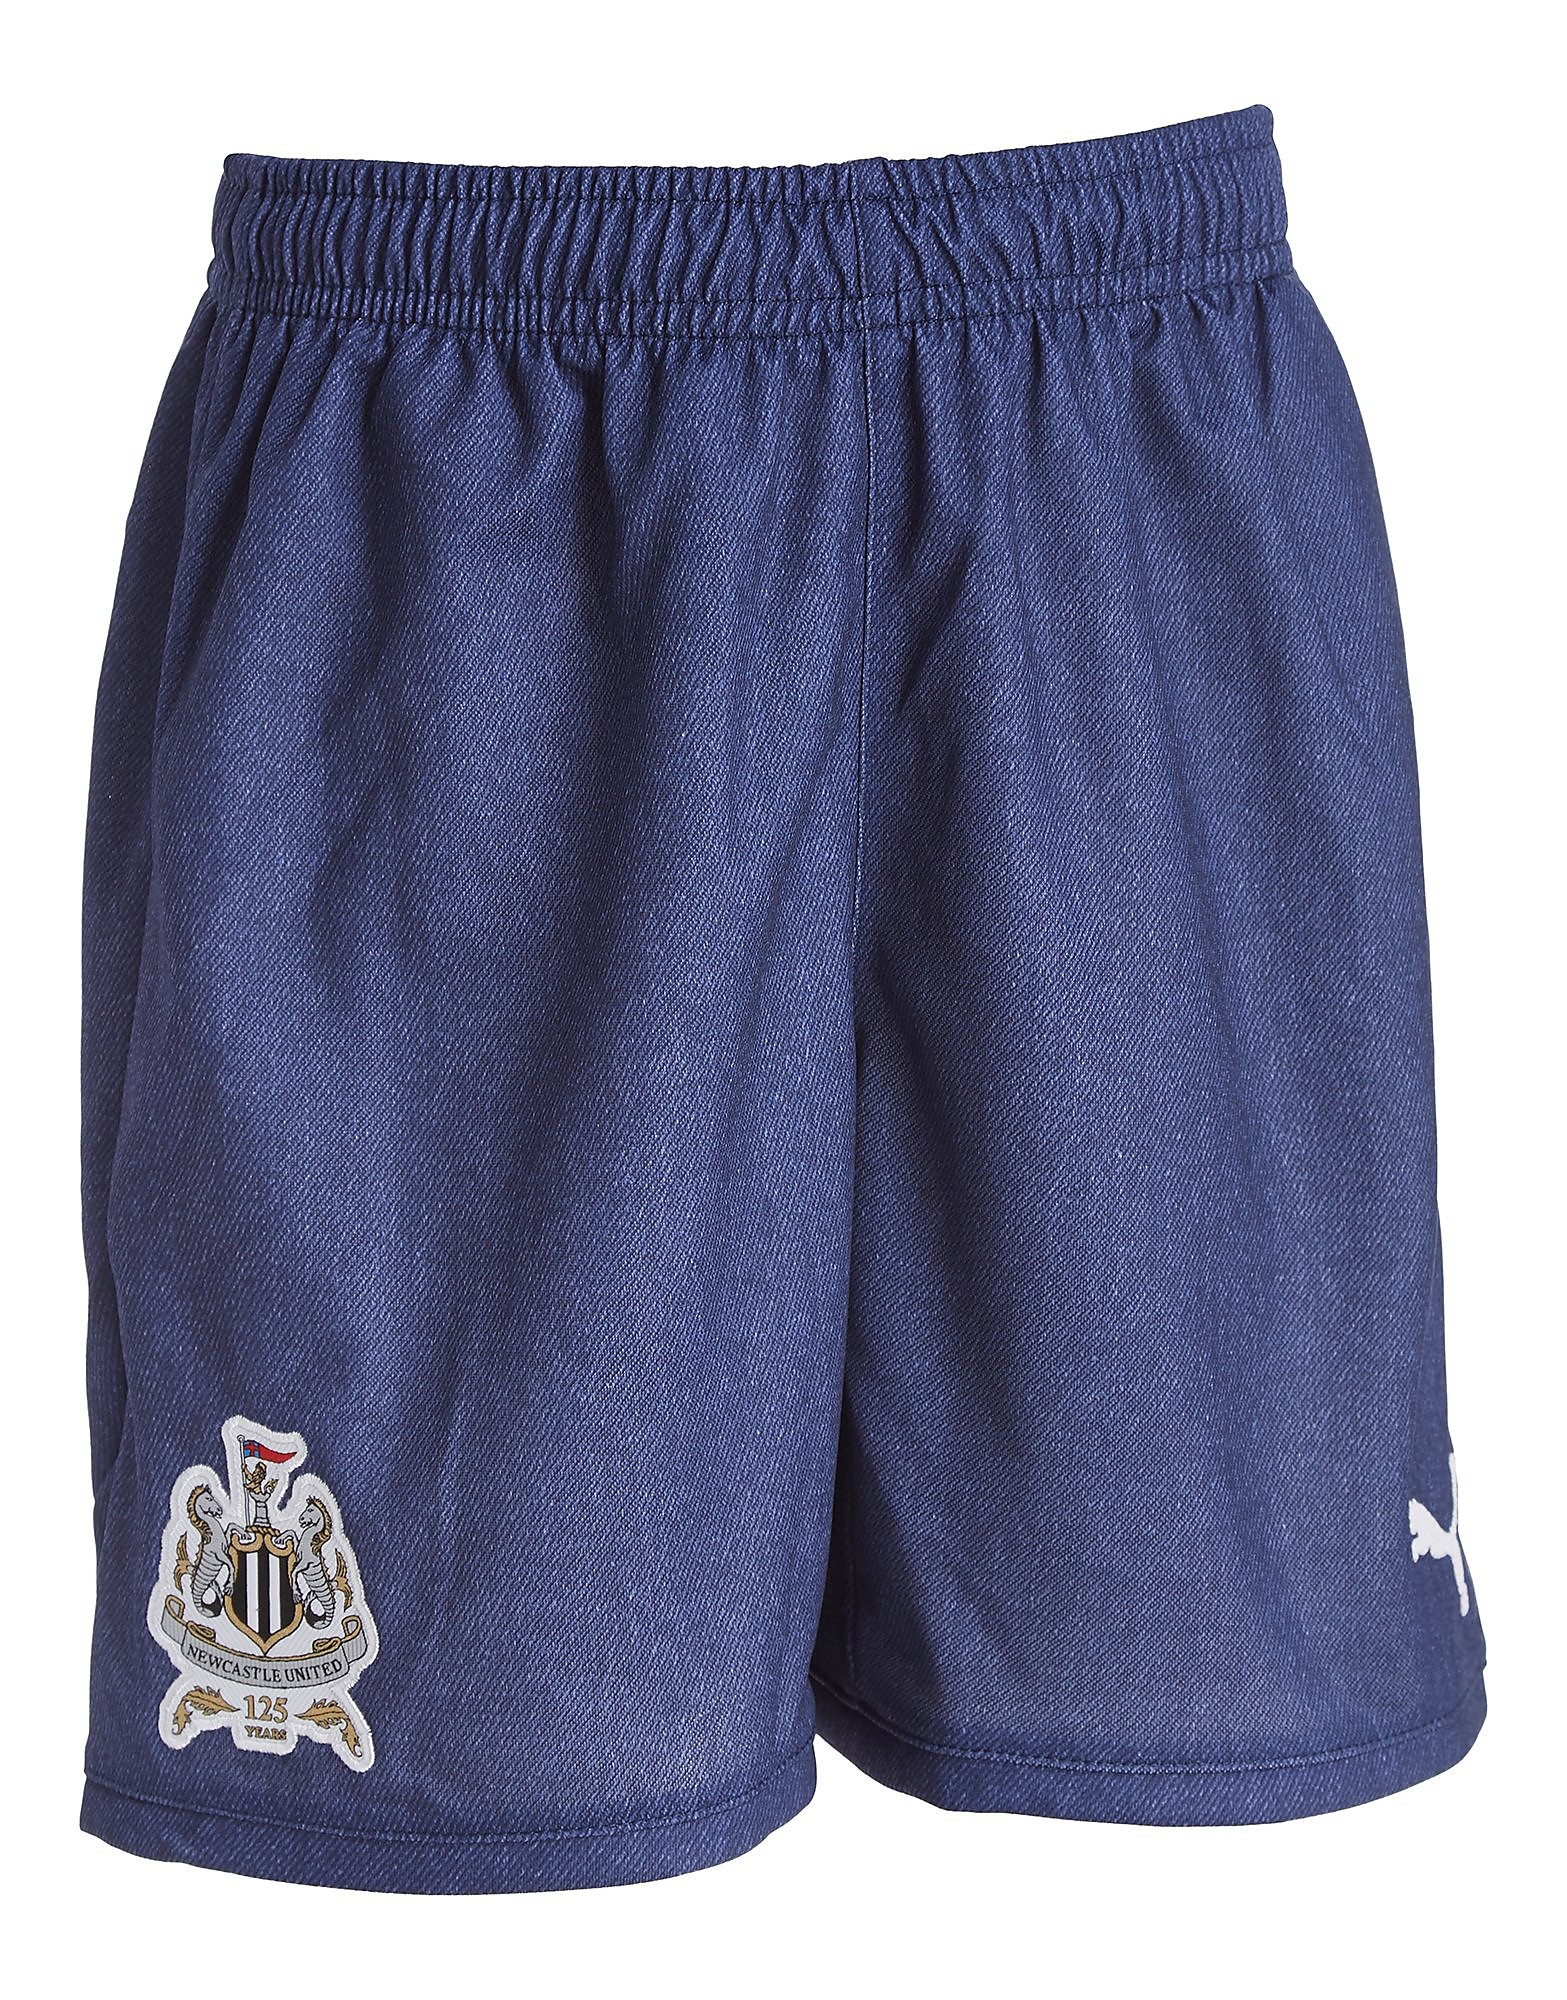 PUMA Newcastle United 2017/18 Away Shorts Junior